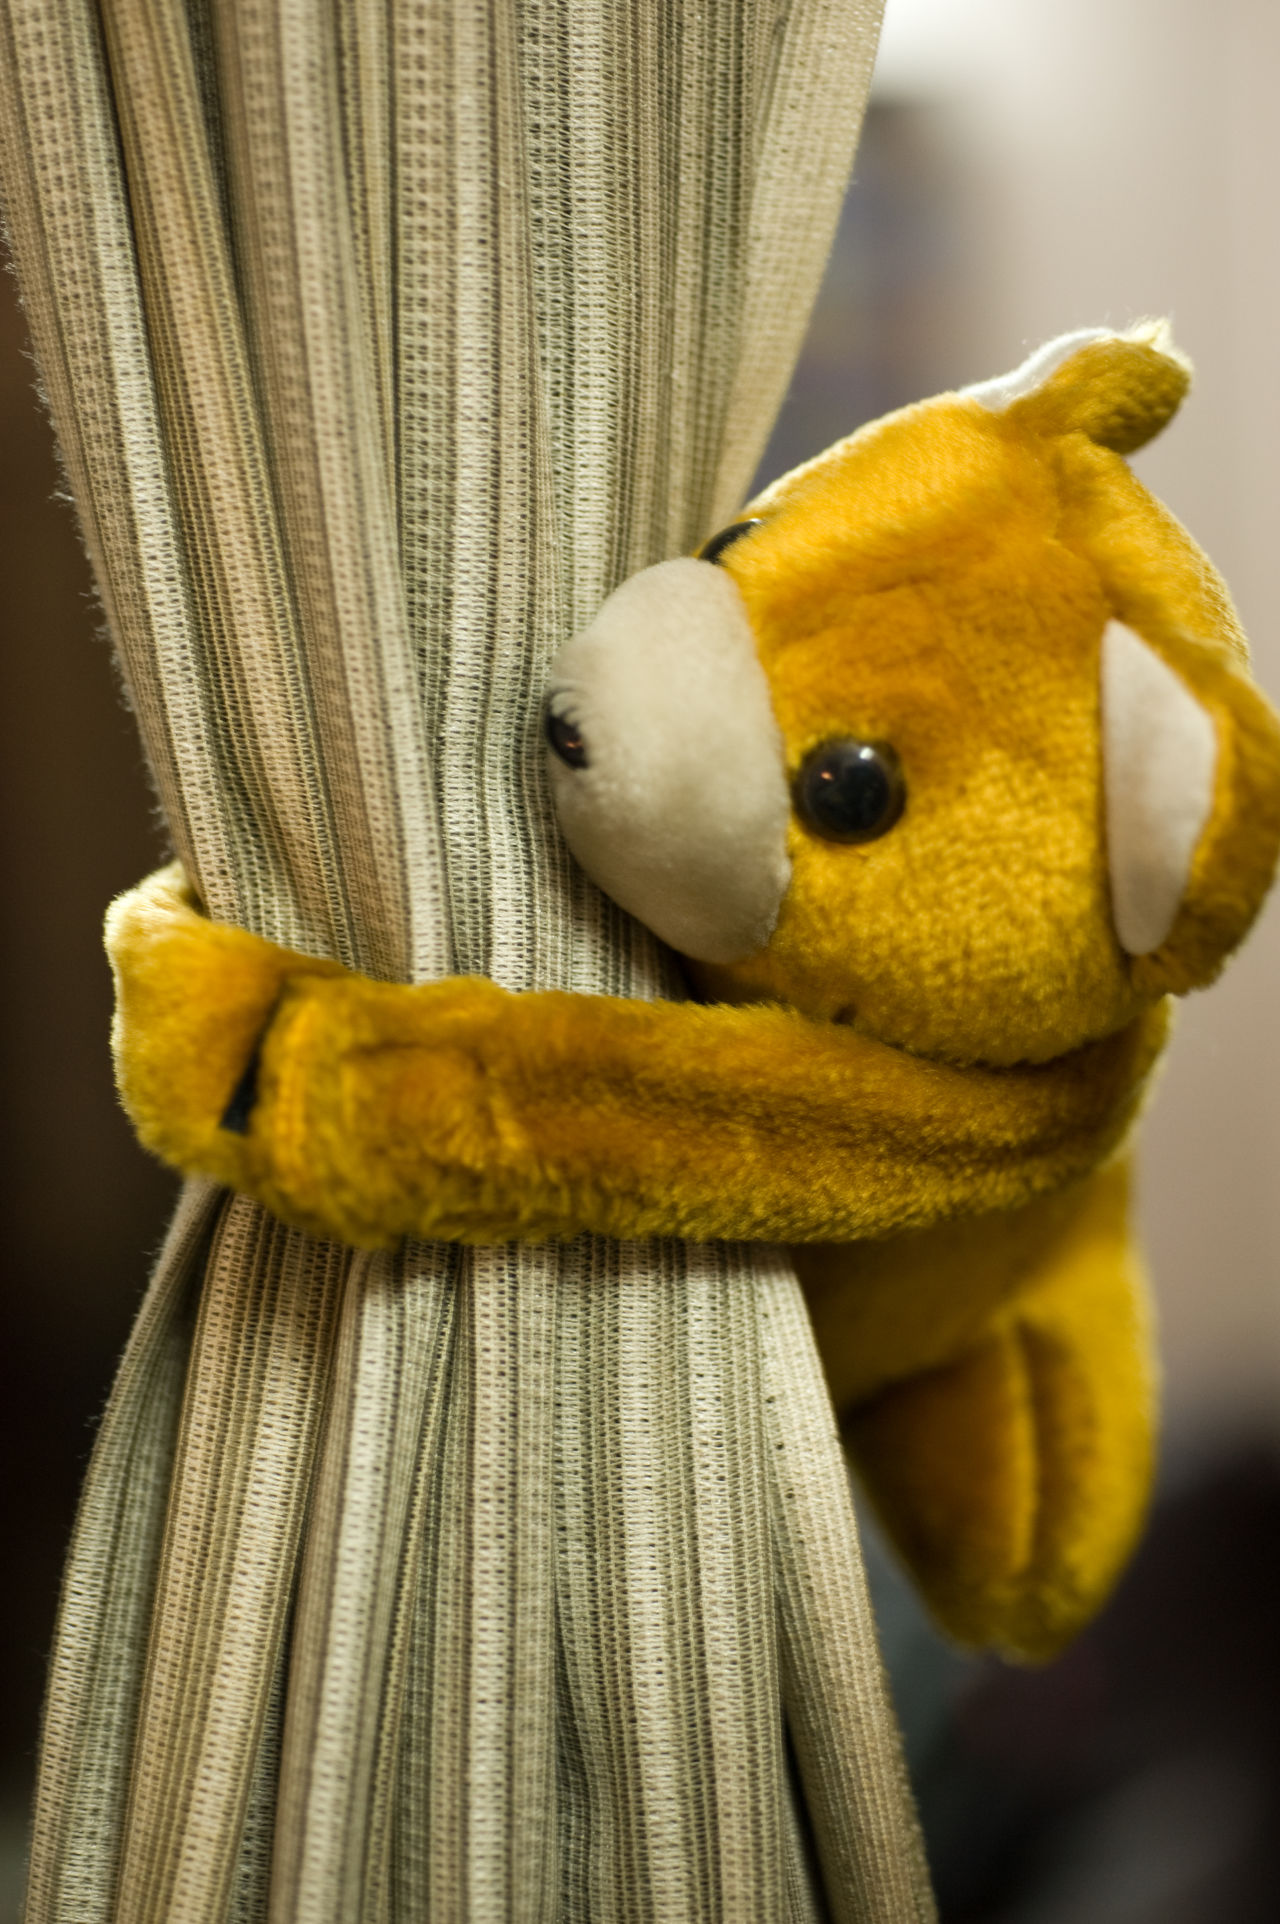 This curtain is held together in the middle by this cute stuffed toy in the shape of a bear Curtain Curtain Closer Cute Stuffed Toy Indoors  No People Stuffed Bear Stuffed Toy Toy